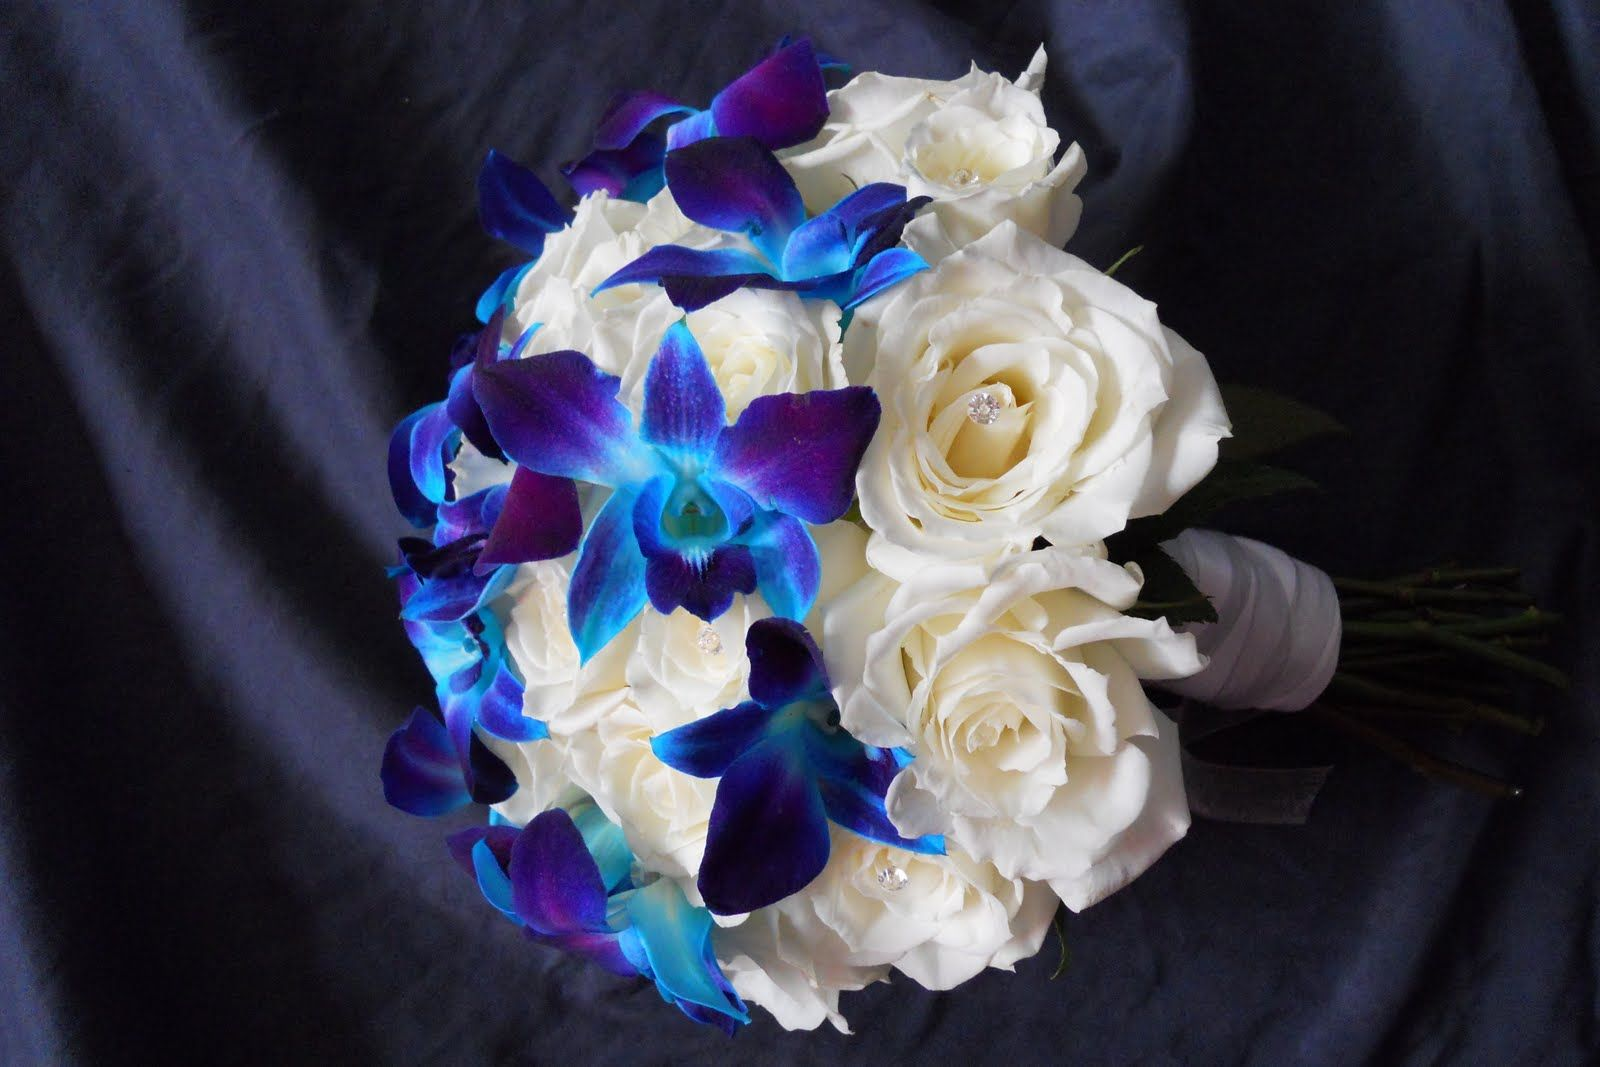 Blue And Purple Roses | The Brides bouquet - White roses, blue orchids, jewels in some of the ...